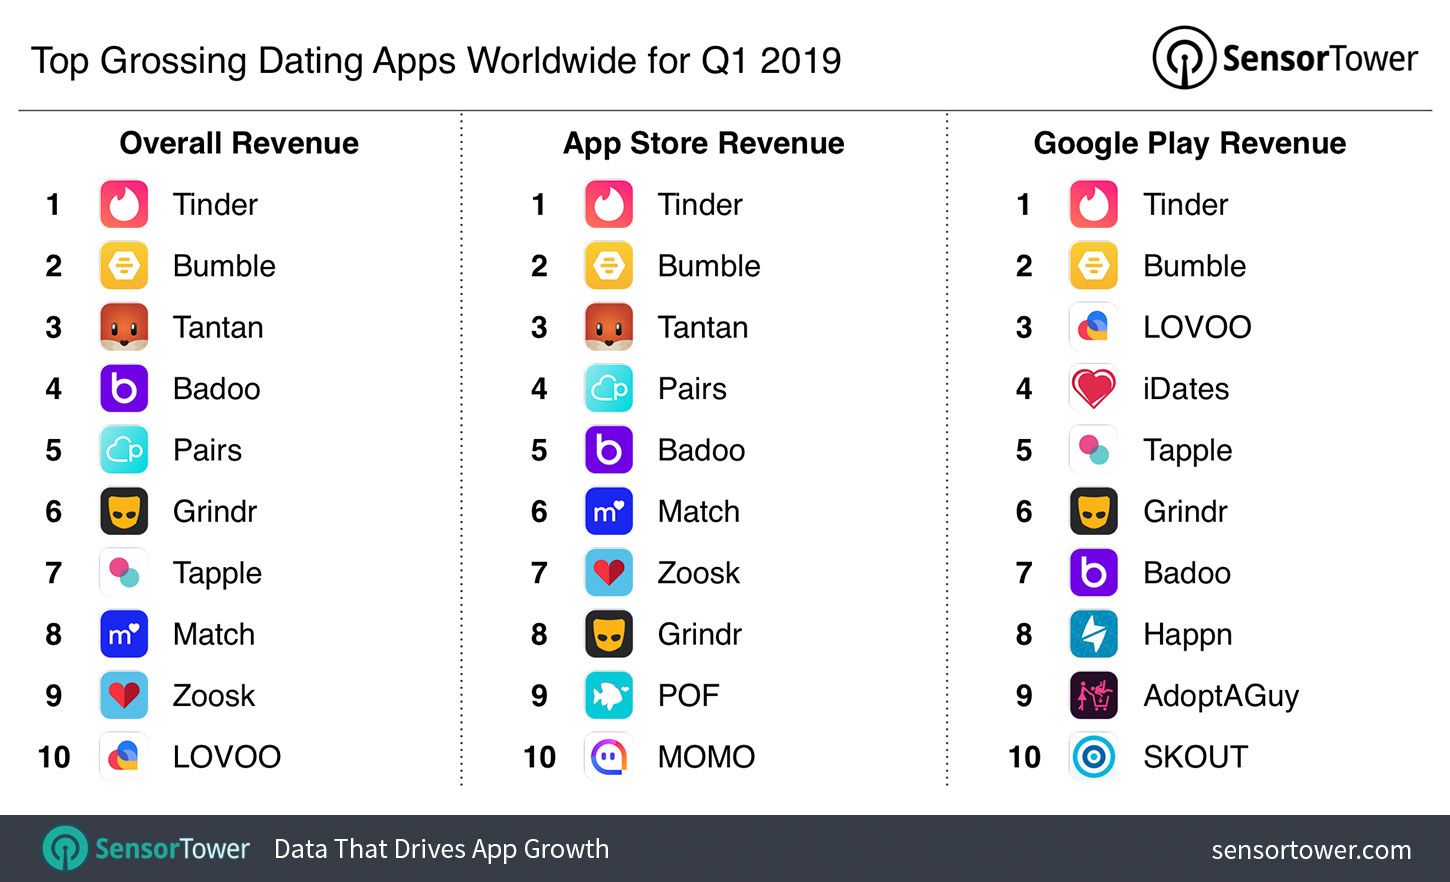 Top Grossing Dating Apps Worldwide for Q1 2019